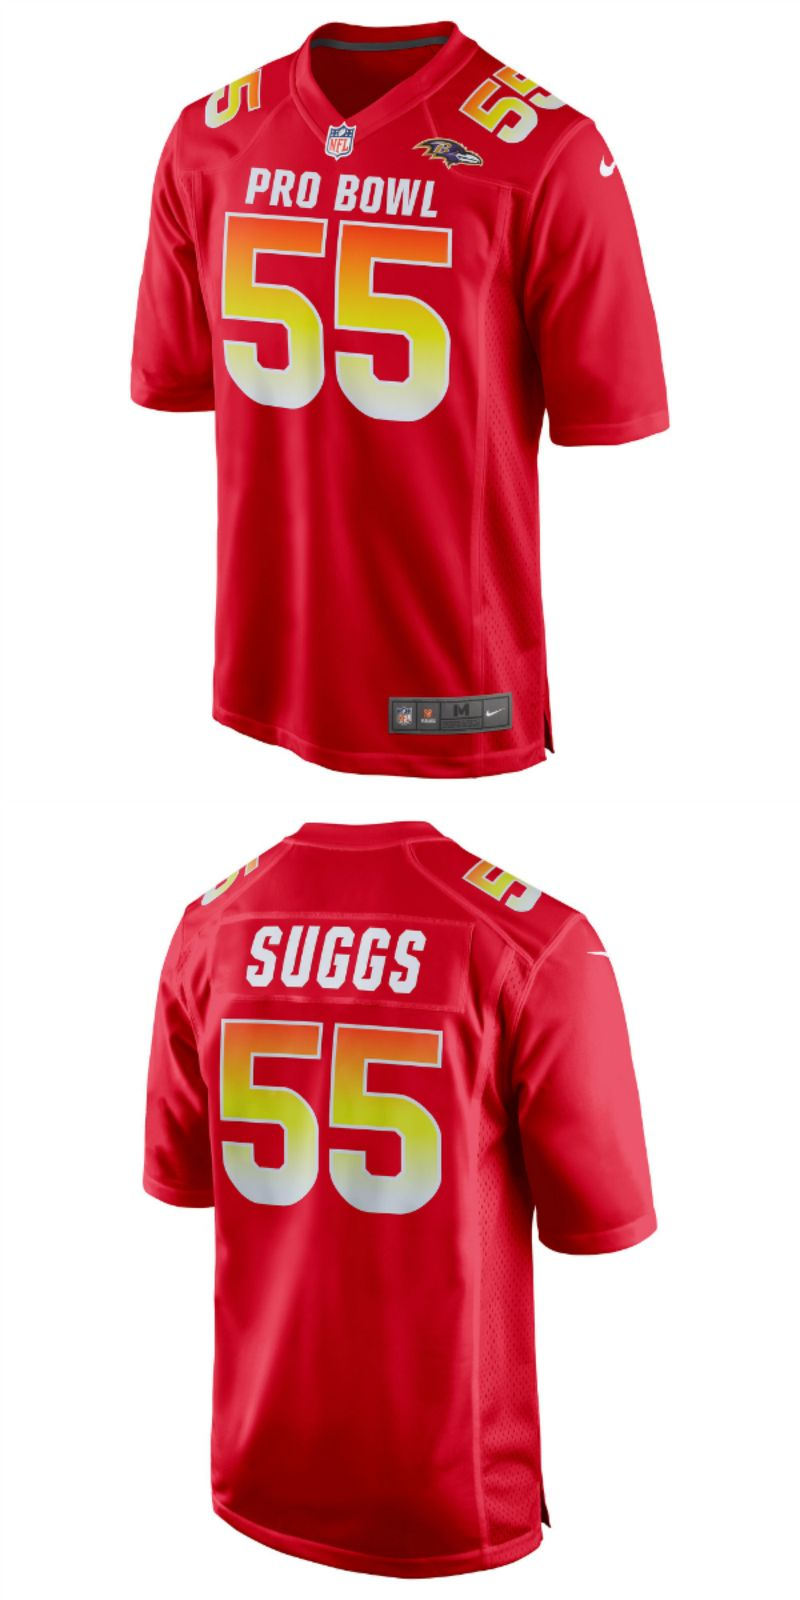 new arrival 22c22 673e9 UP TO 70% OFF. Terrell Suggs AFC Nike 2018 Pro Bowl Game ...